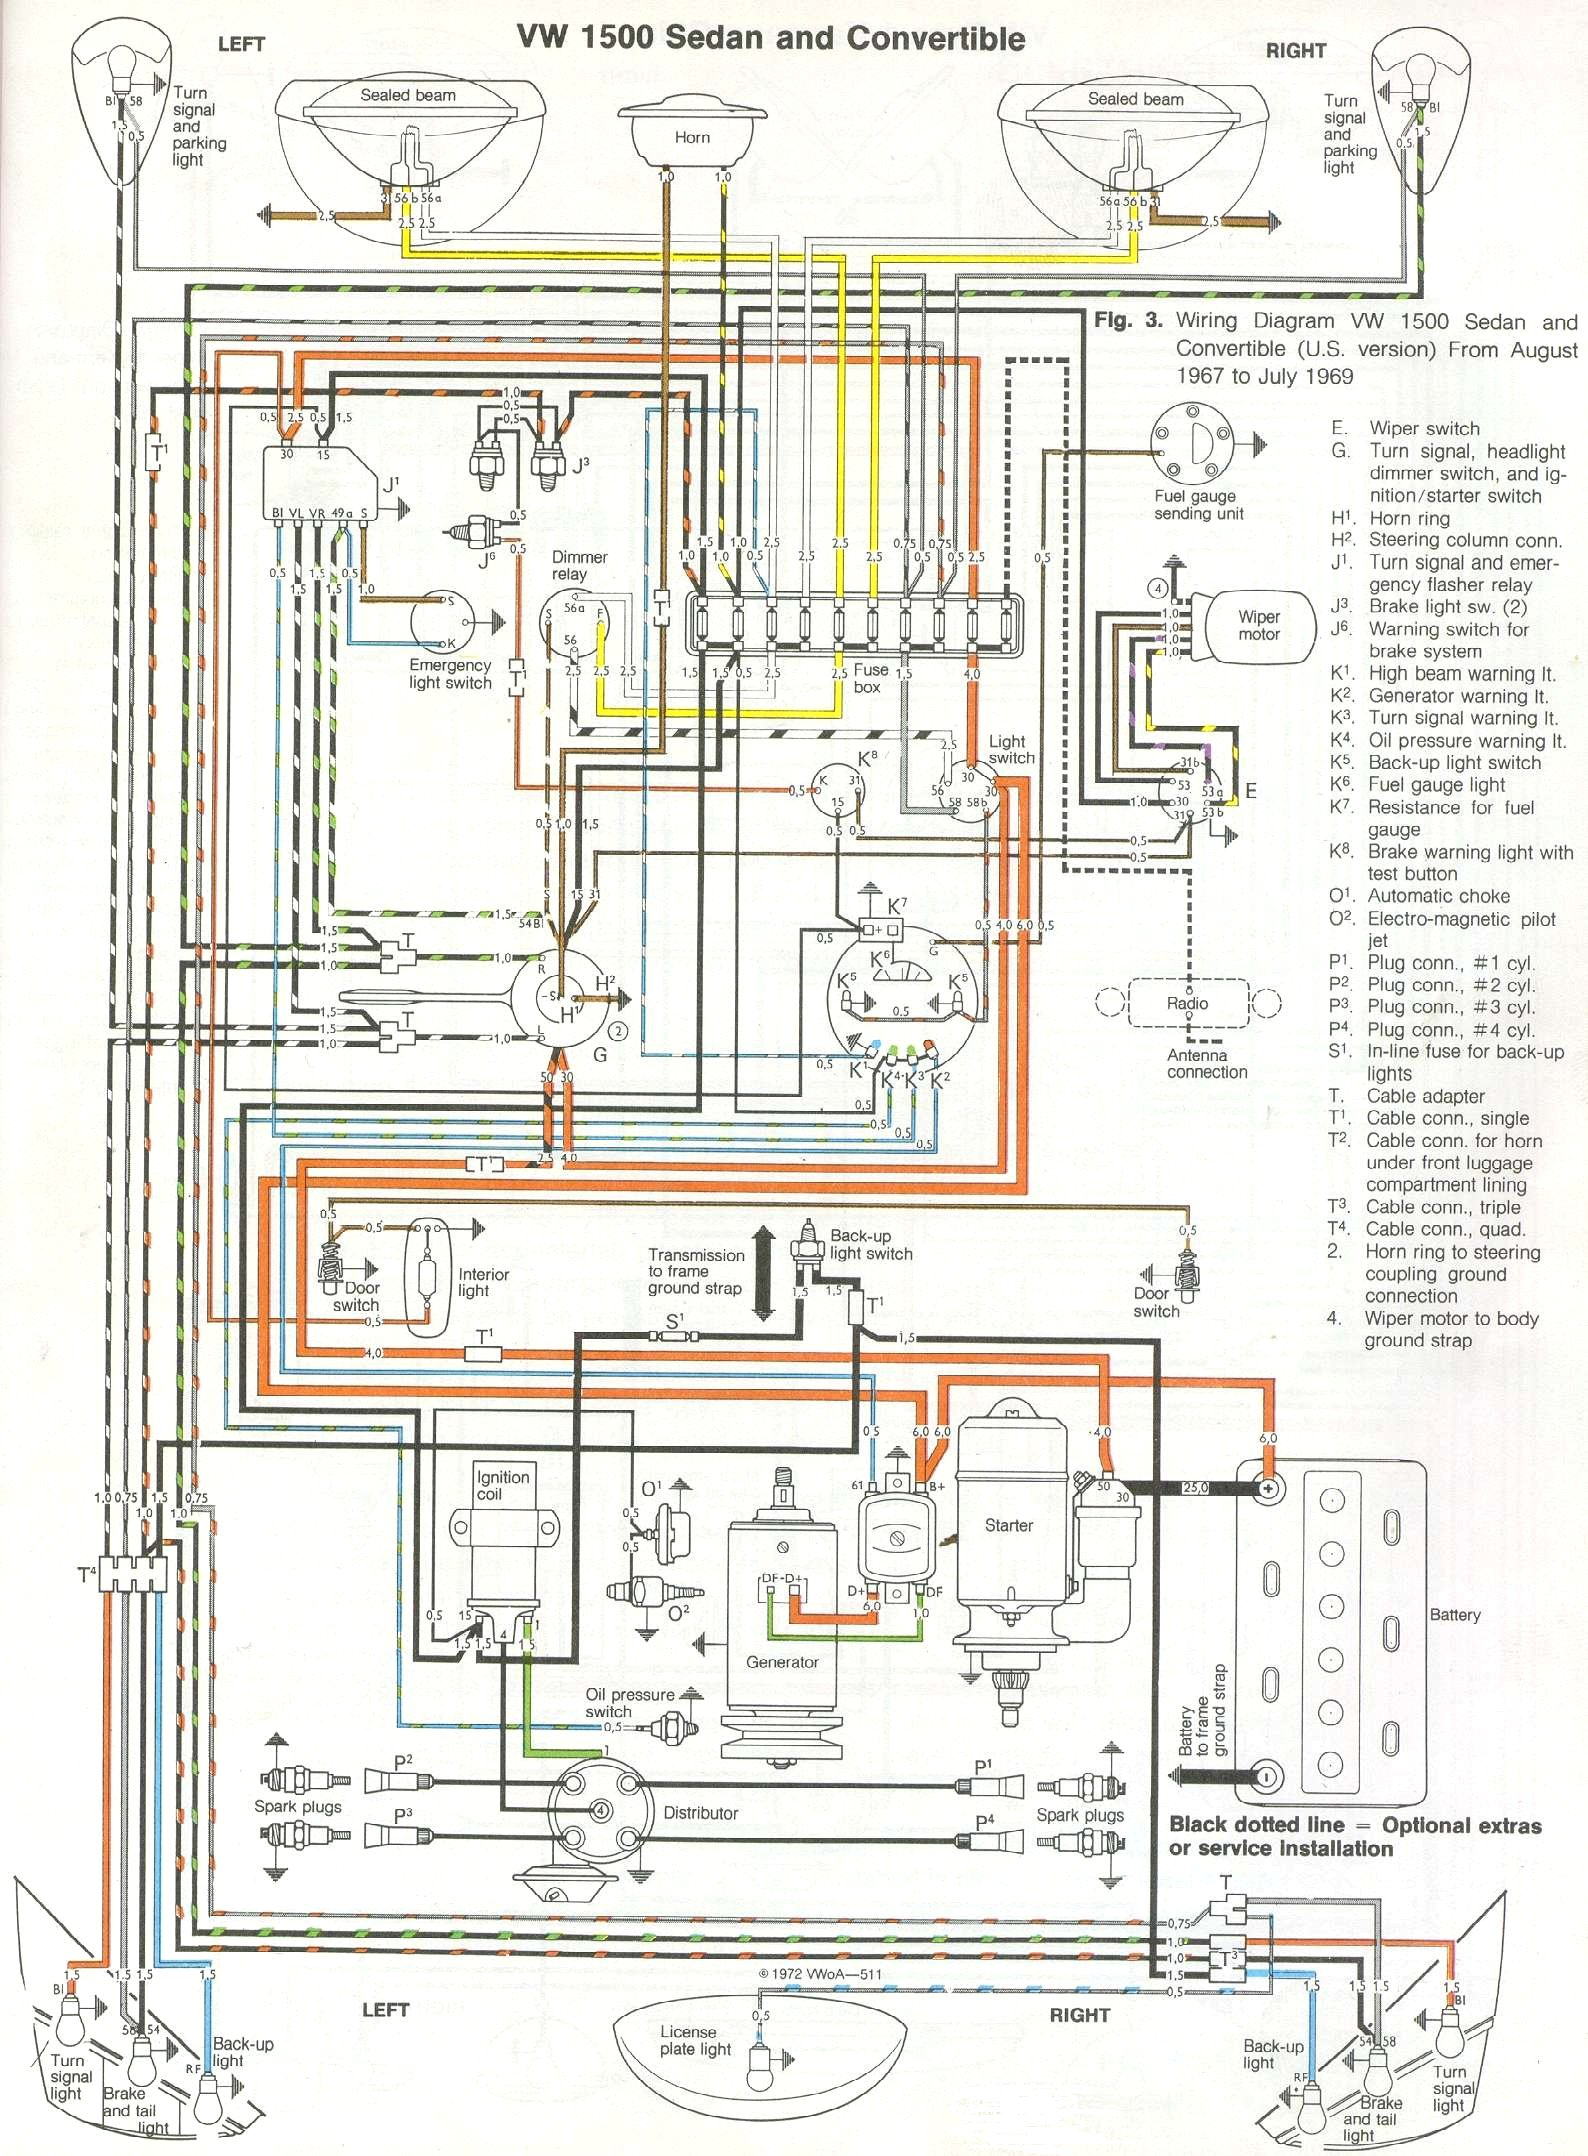 bug_6869 1973 vw beetle wiring diagram 1971 vw beetle wiring diagram 68 VW Wiring Diagram at mifinder.co